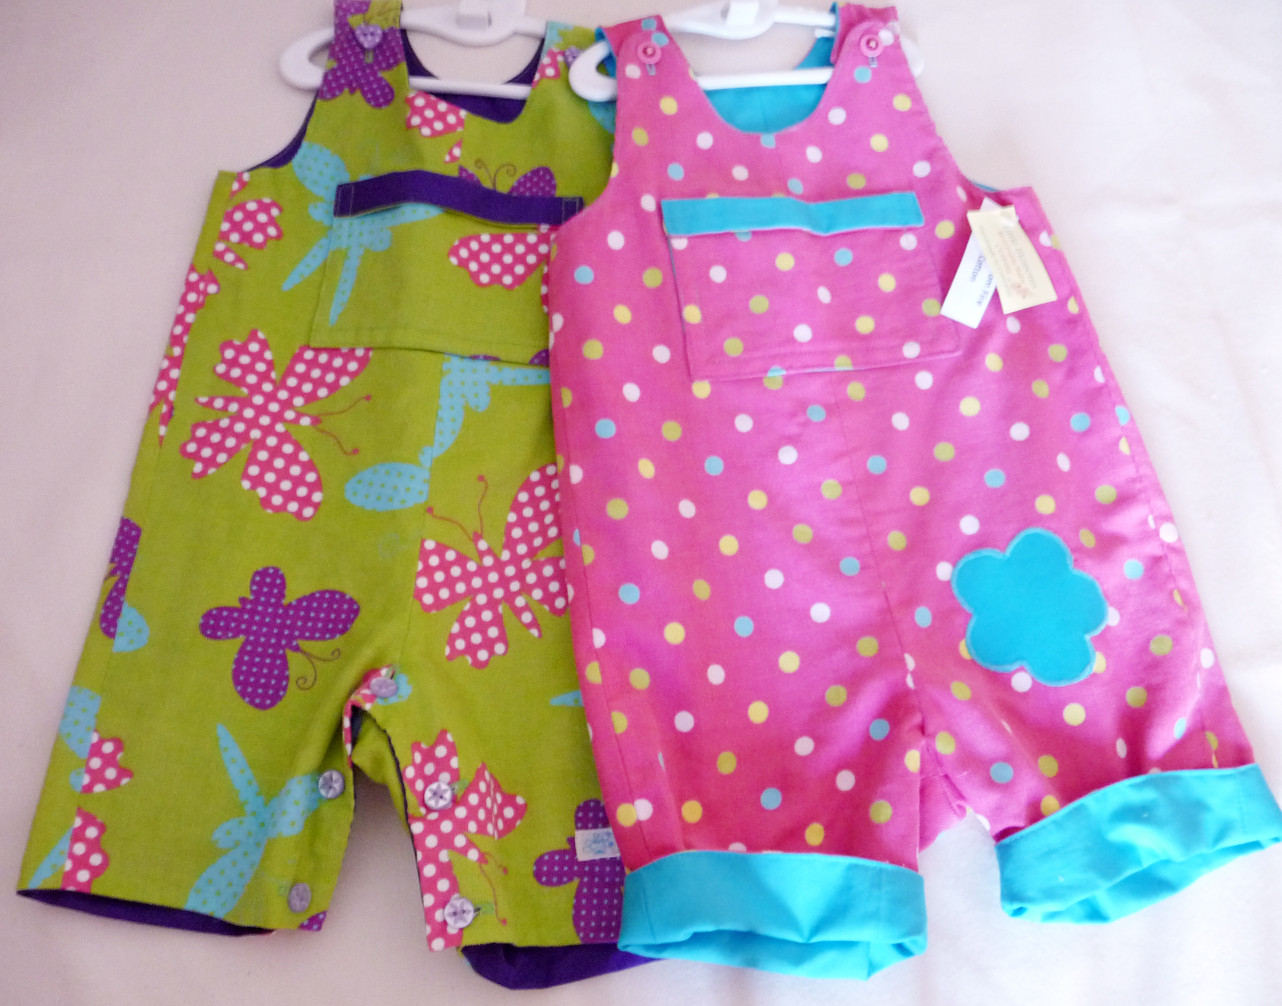 Beautiful Baby Dresses toddler Clothing Patterns Of Wonderful 49 Pictures toddler Clothing Patterns